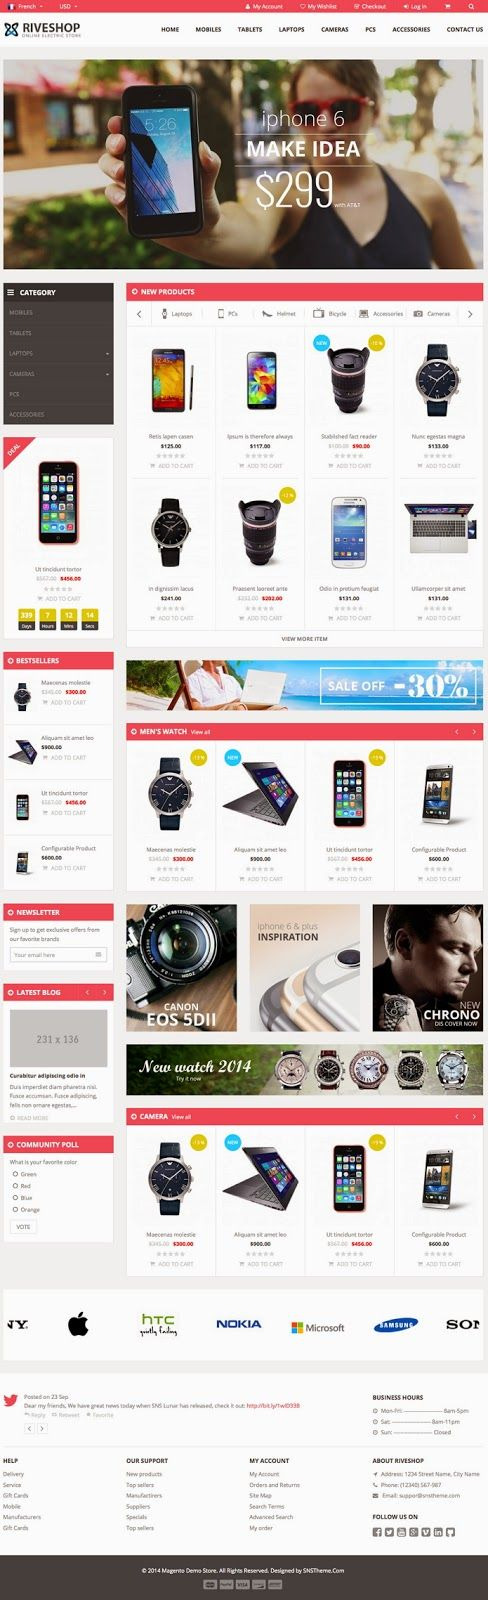 New Premium Magento Theme #eCommerce #website #design